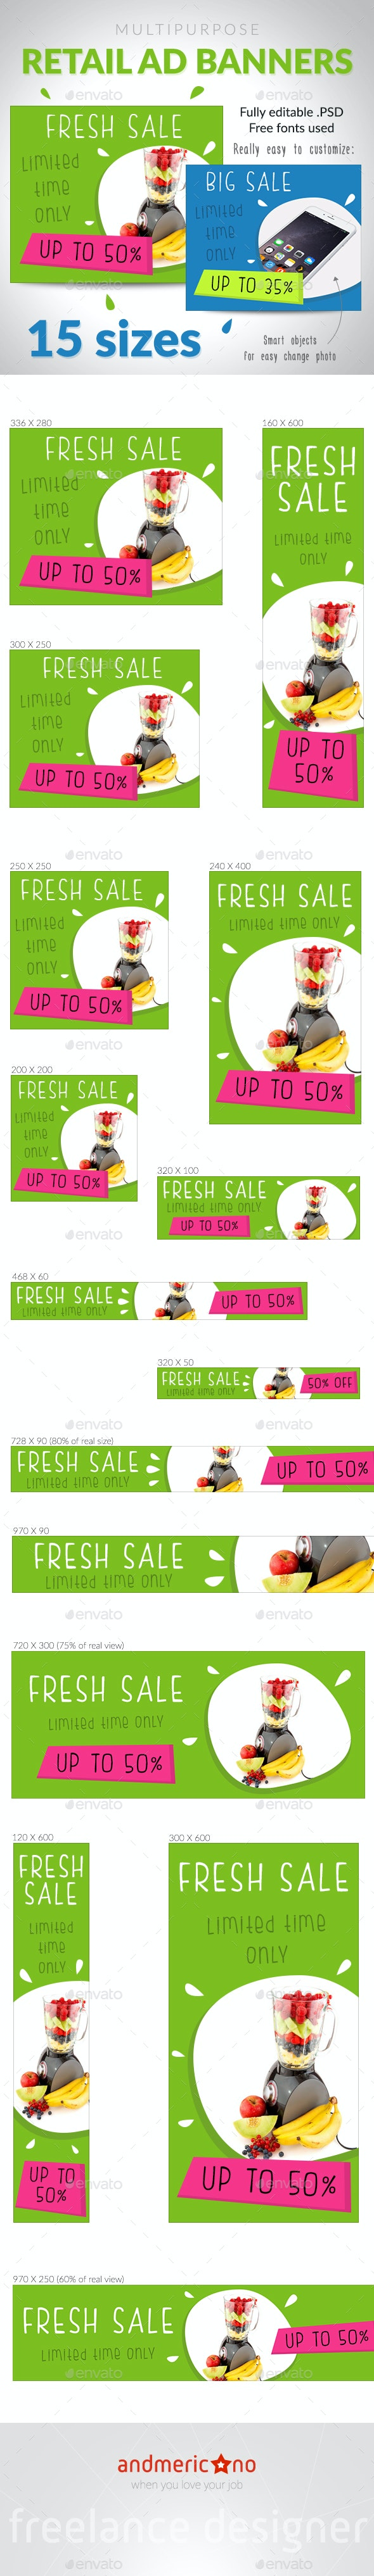 Fresh Sale Ad Banners - Banners & Ads Web Elements